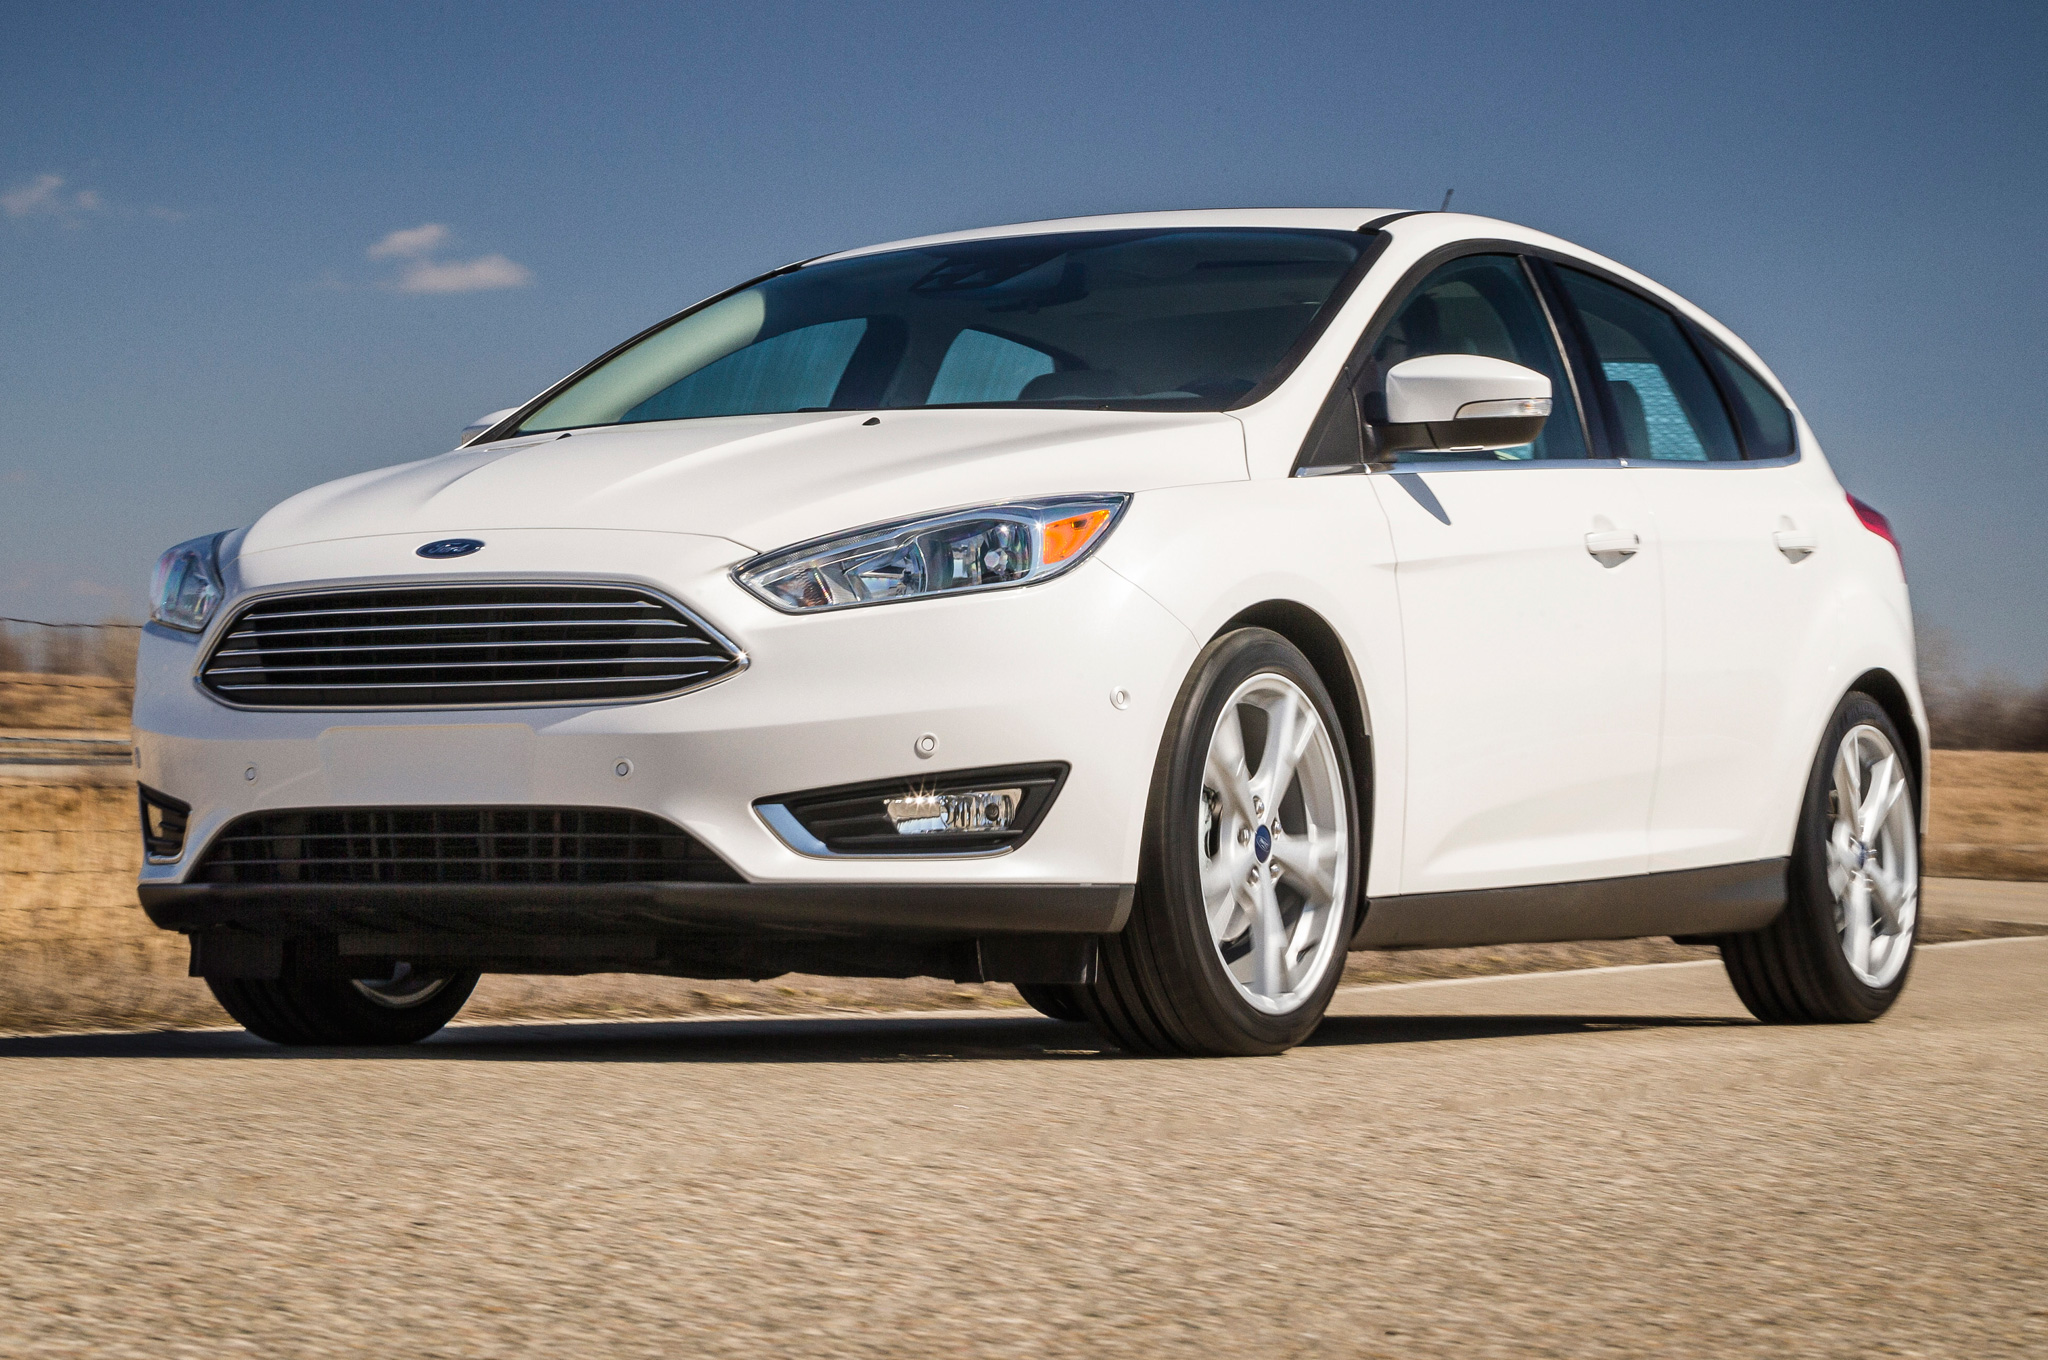 For style, think small. The 2015 Ford Focus ...